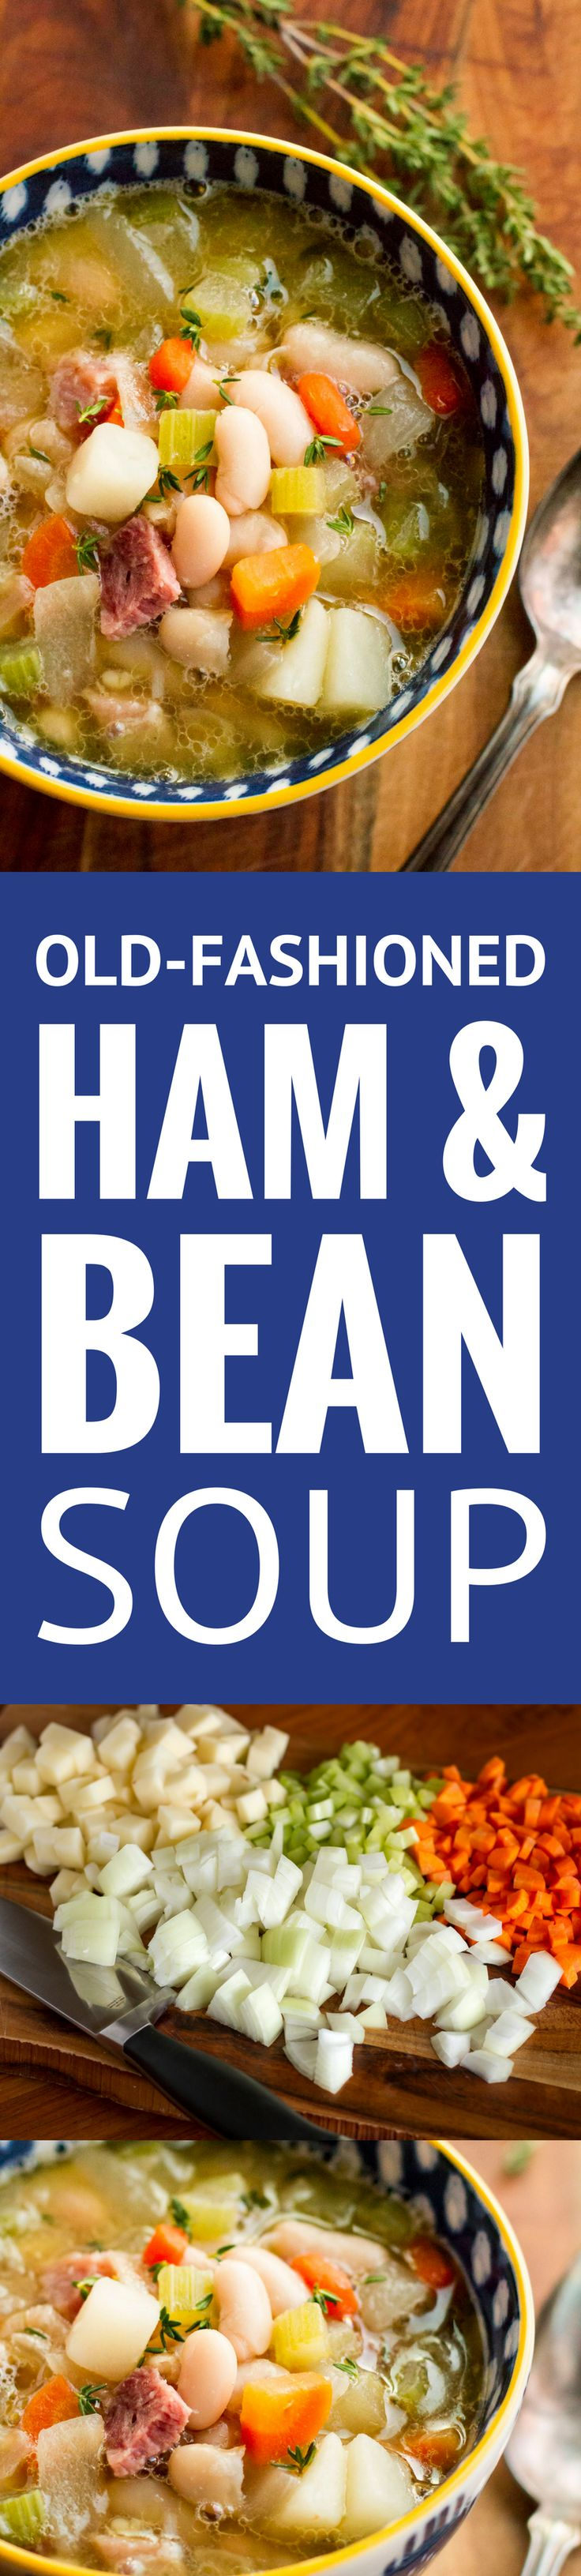 Ham and Bean Soup Recipe -- this hearty ham and bean soup, filled with diced carrots, celery, and potatoes, is the perfect way to use up leftover ham… SO delicious on a cold day! | easy ham and bean soup | old fashioned ham and bean soup | stovetop ham and bean soup | best ham and bean soup | find the recipe on unsophisticook.com